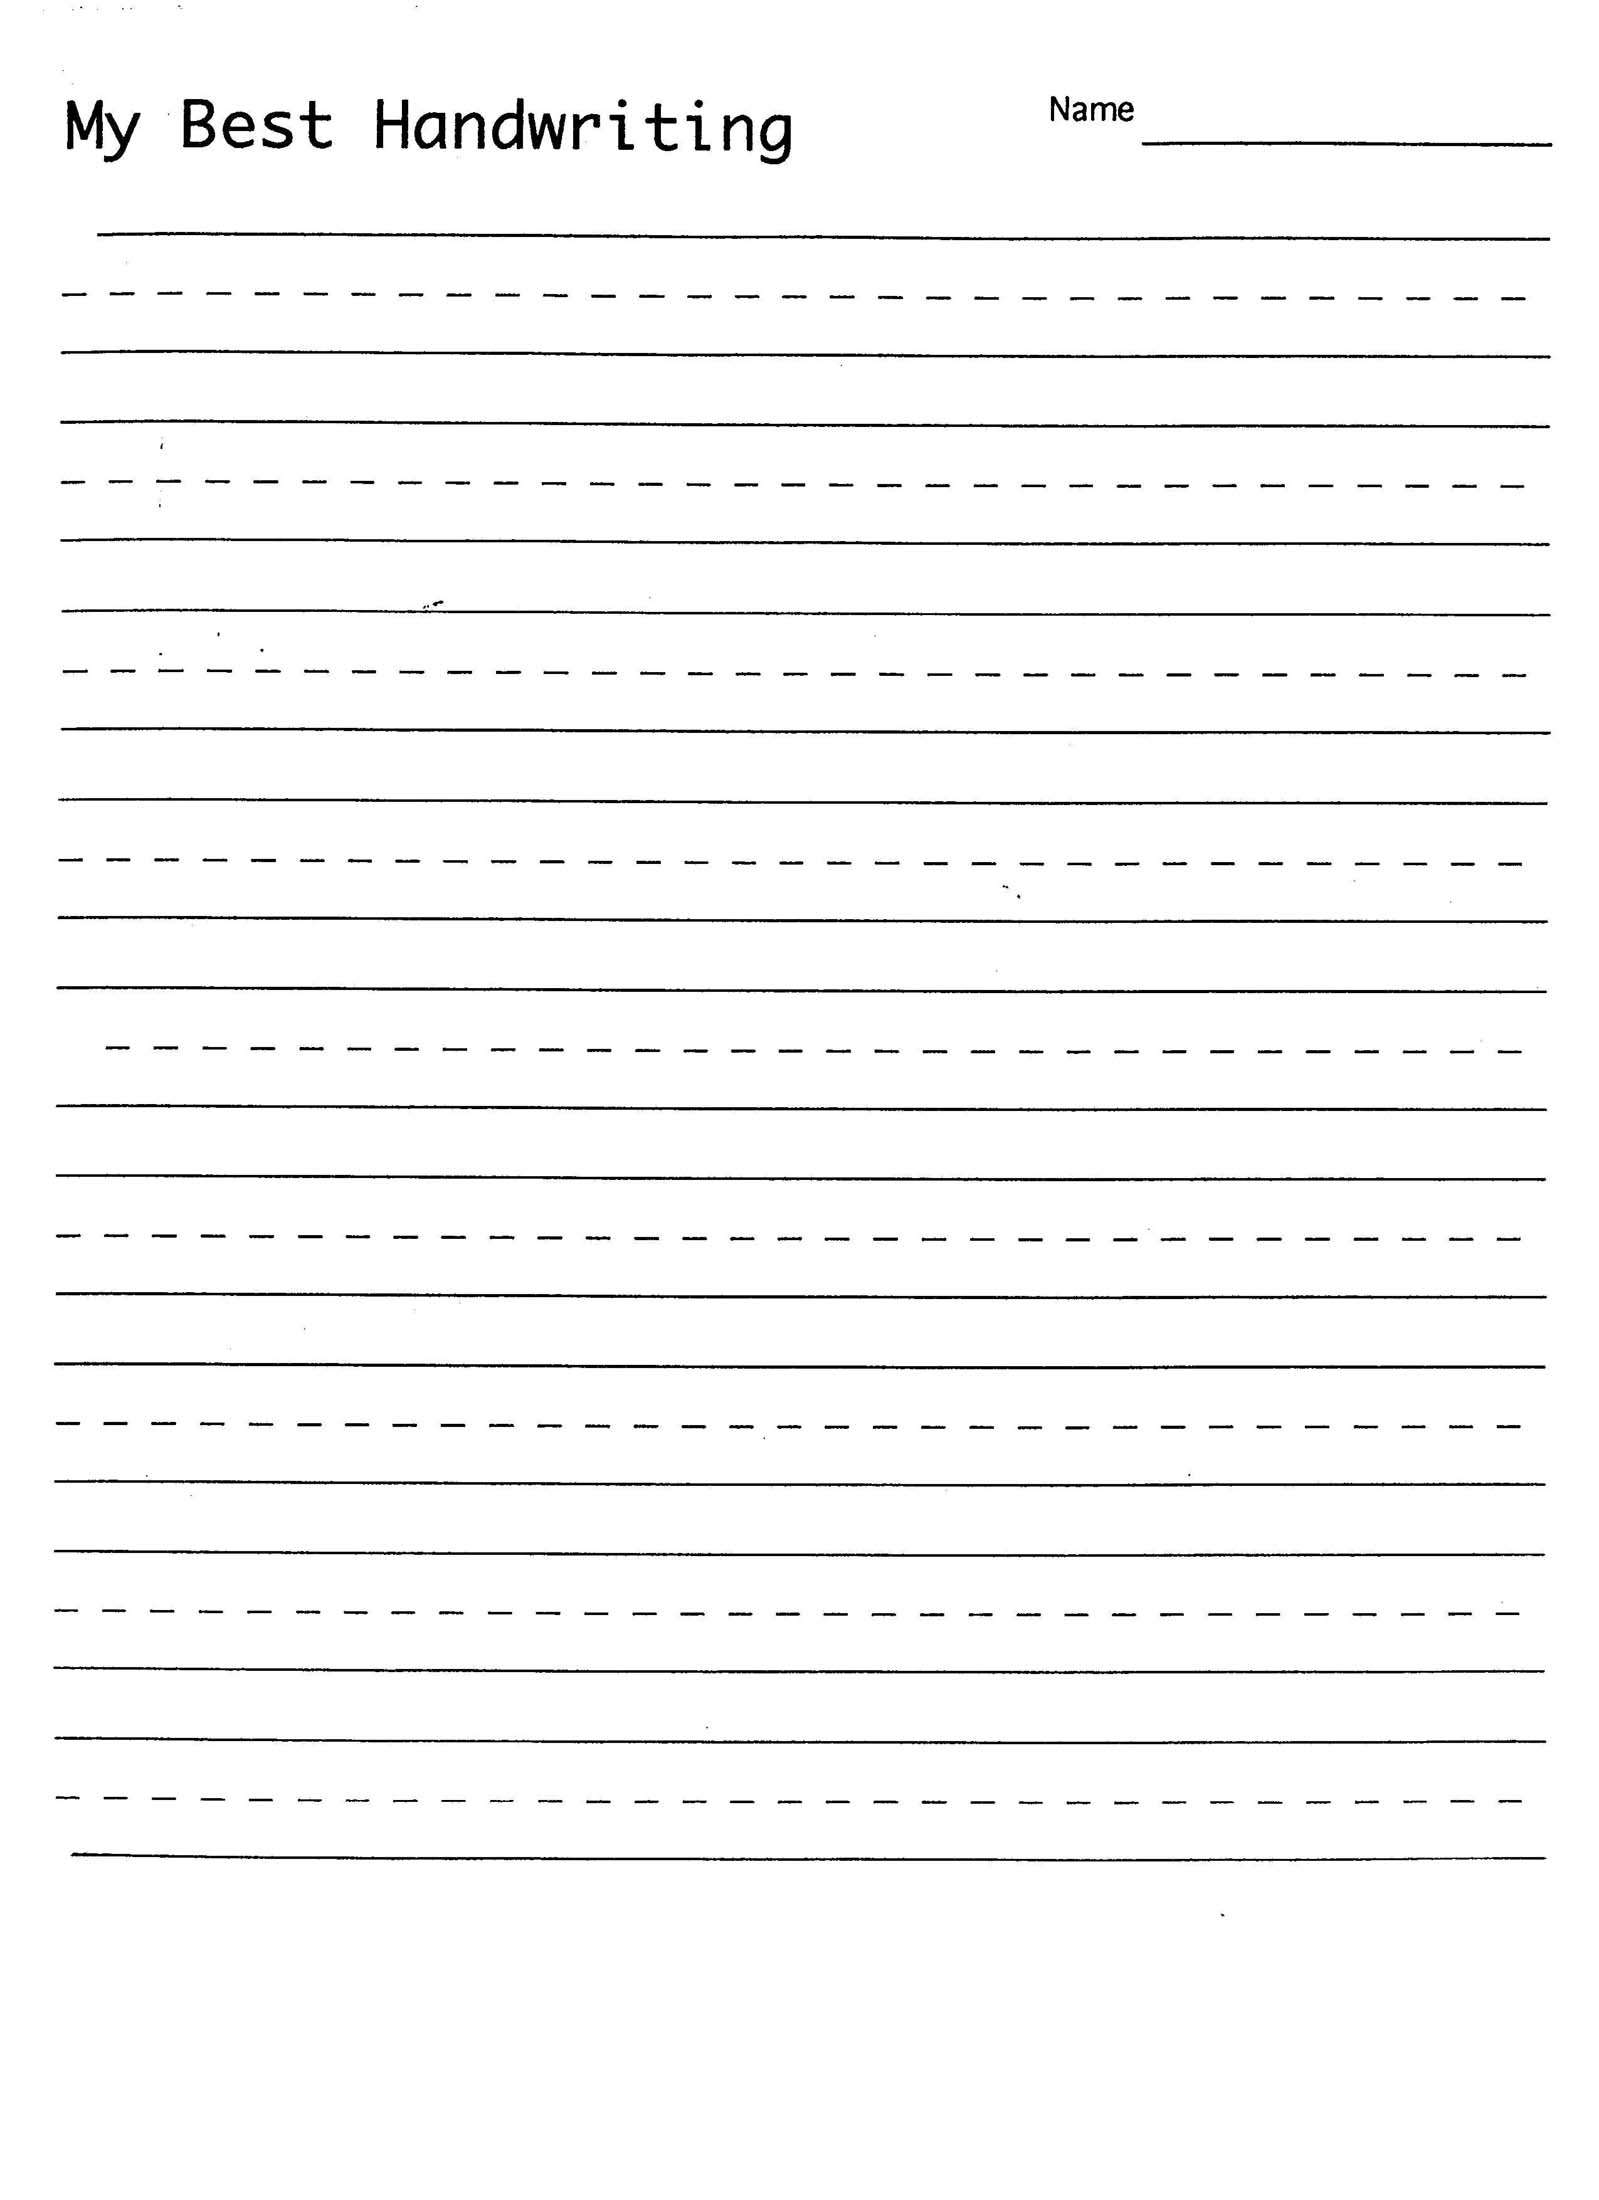 6 Best Images Of Free Printable Blank Handwriting Practice